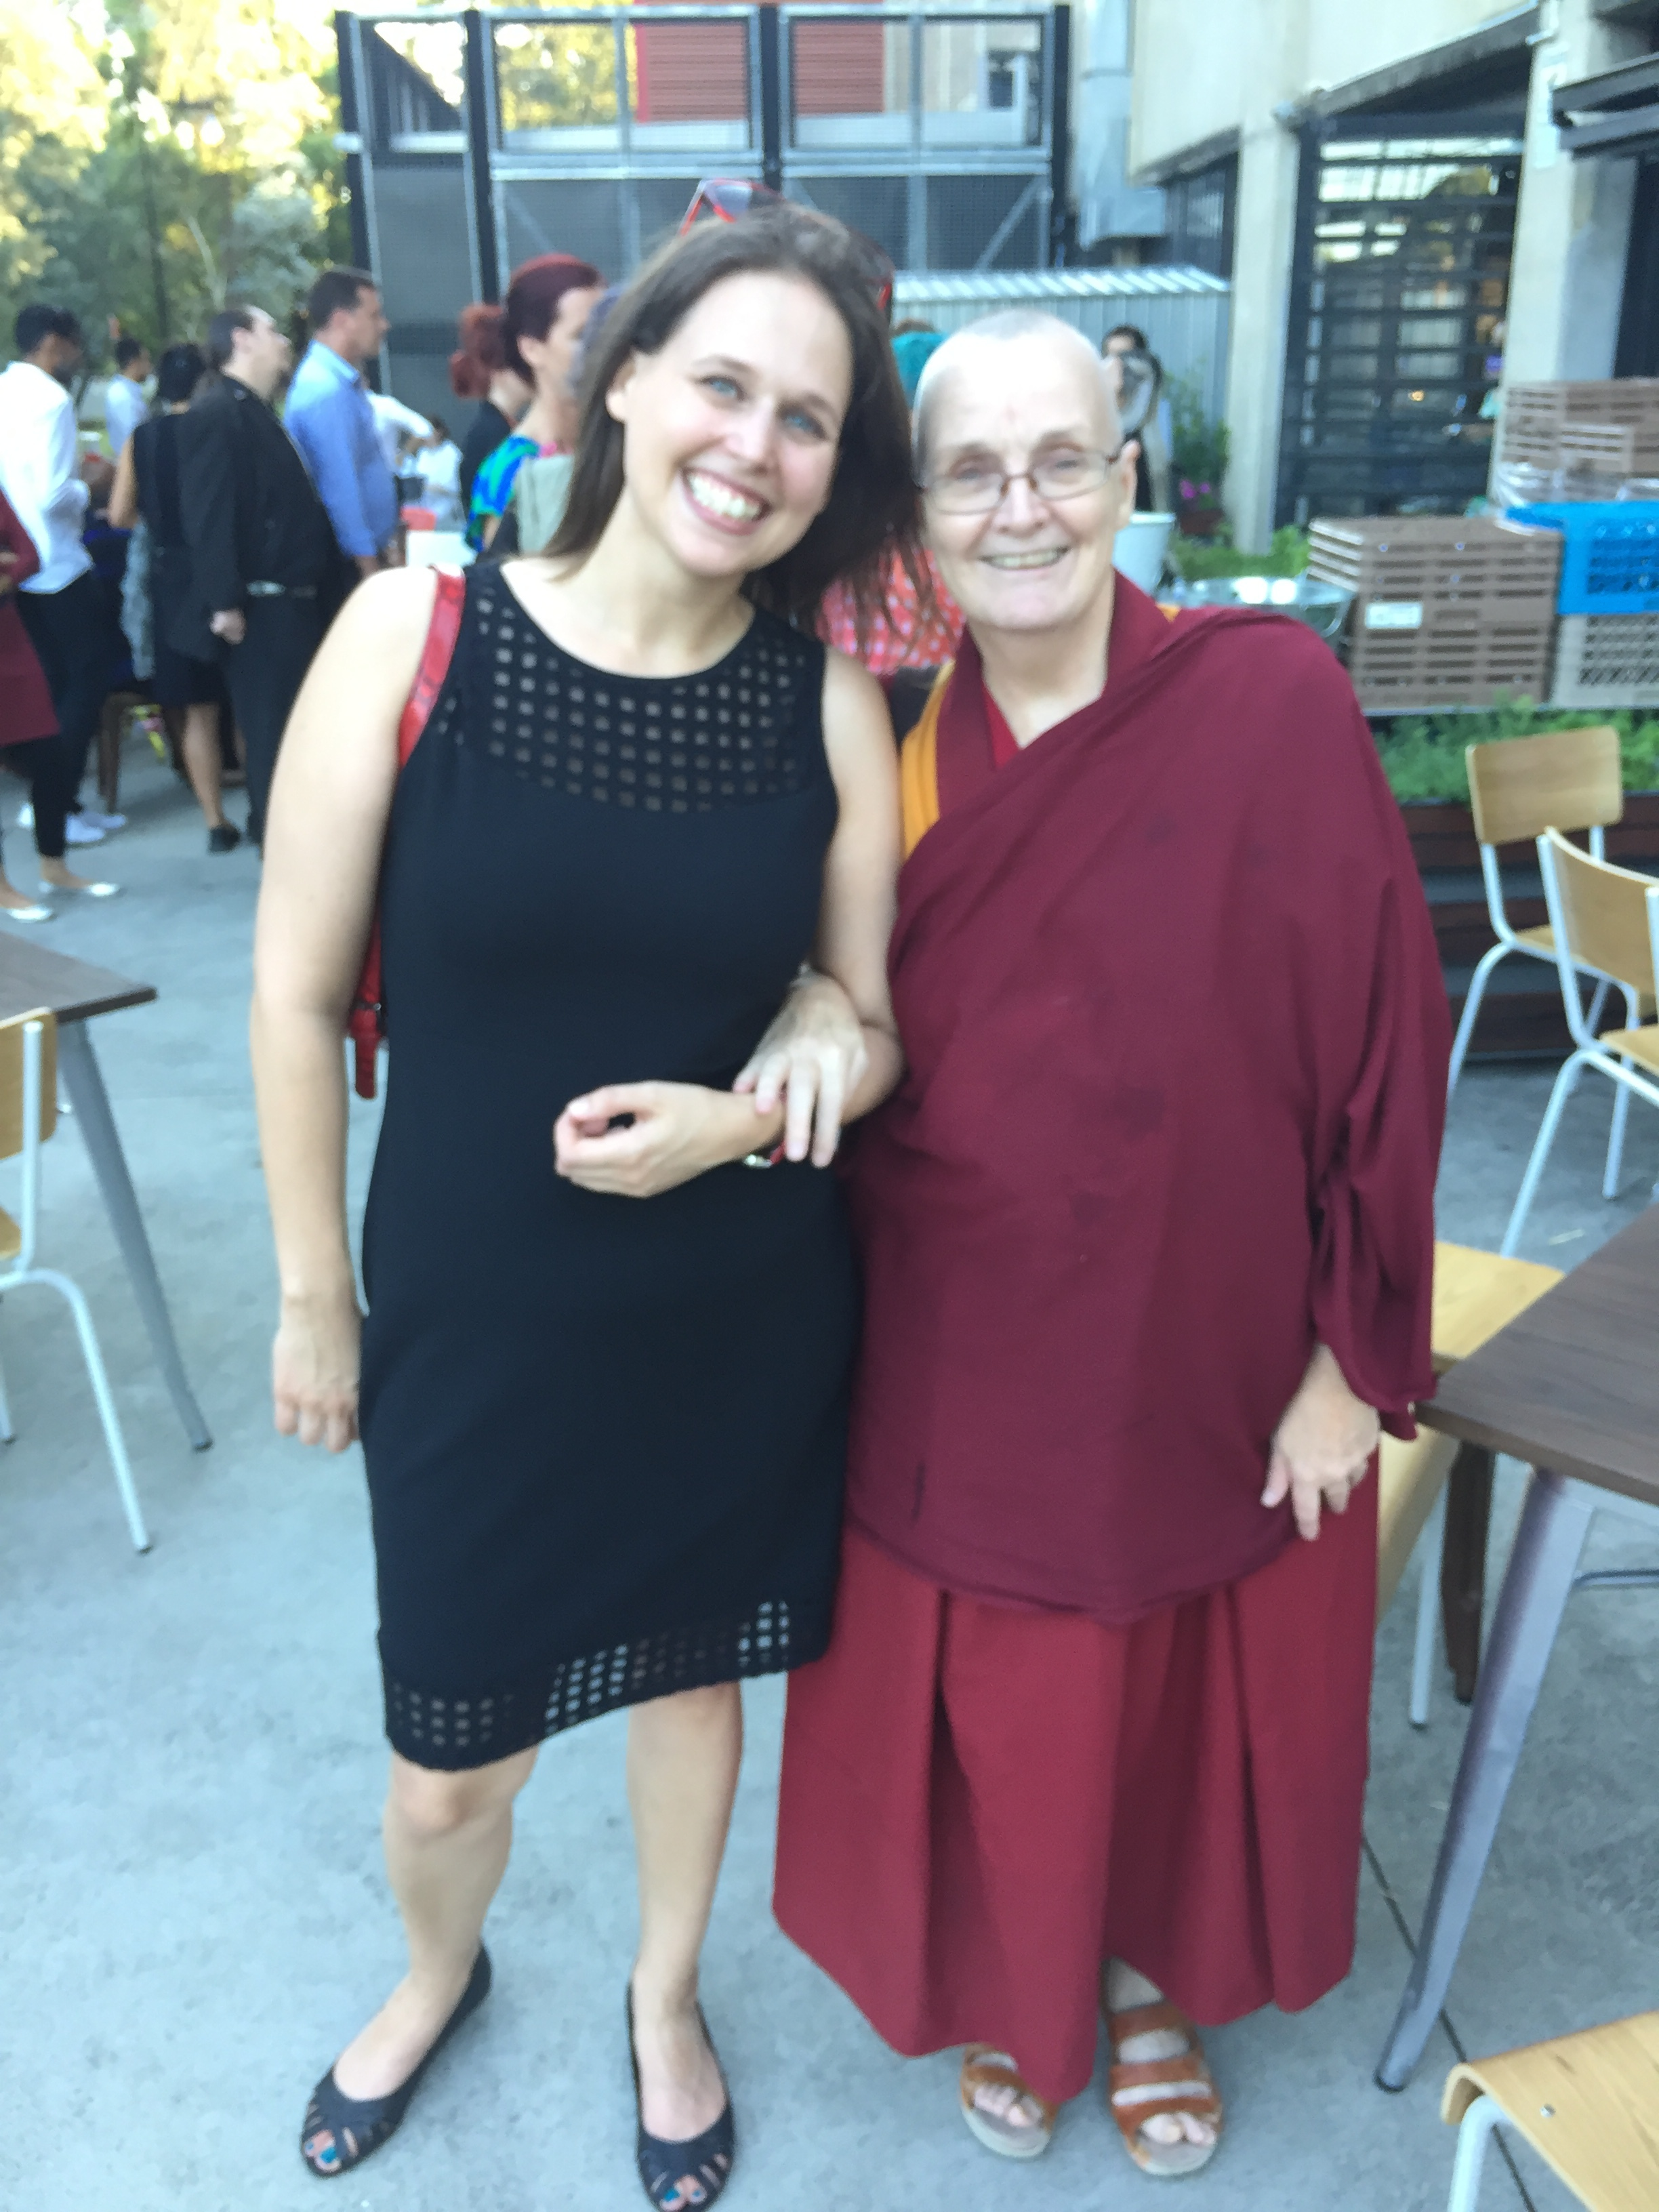 Finalist Lada Dedic with Ven. Thubten Chokyi at the opening of The 64th Blake Prize, Casula Powerhouse Arts Centre, 2016